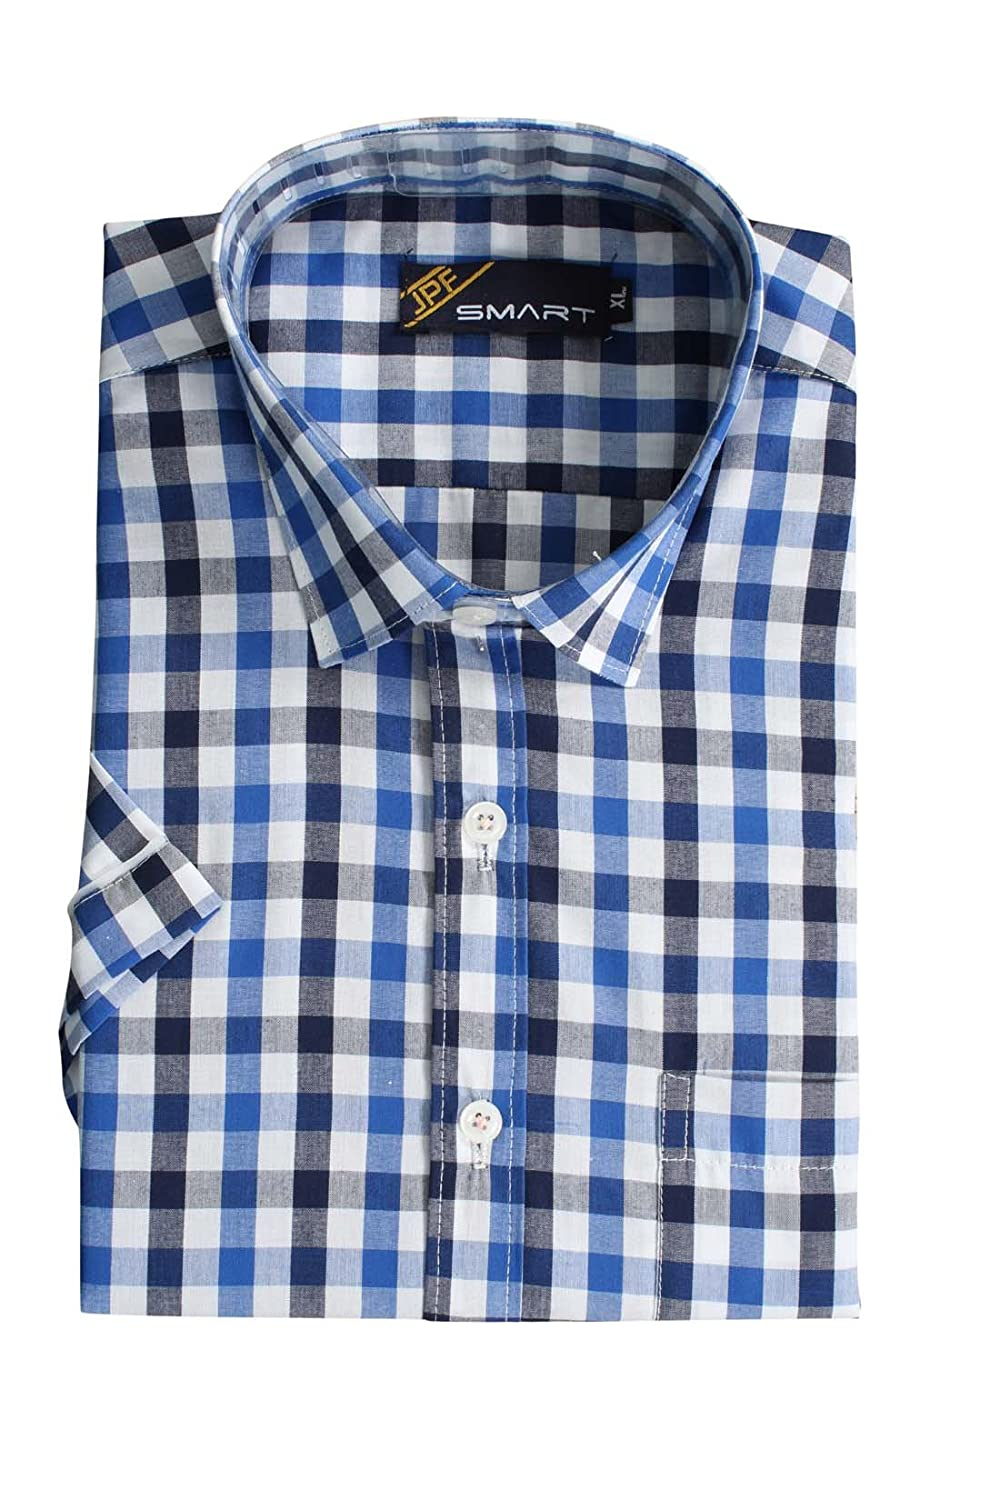 626c09b73 JPF Smart Mens Cotton Regular Fit Formal Half Sleeve Shirt with Pocket  Colorful Summer Casual Clothing (Blue with White): Amazon.in: Clothing &  Accessories